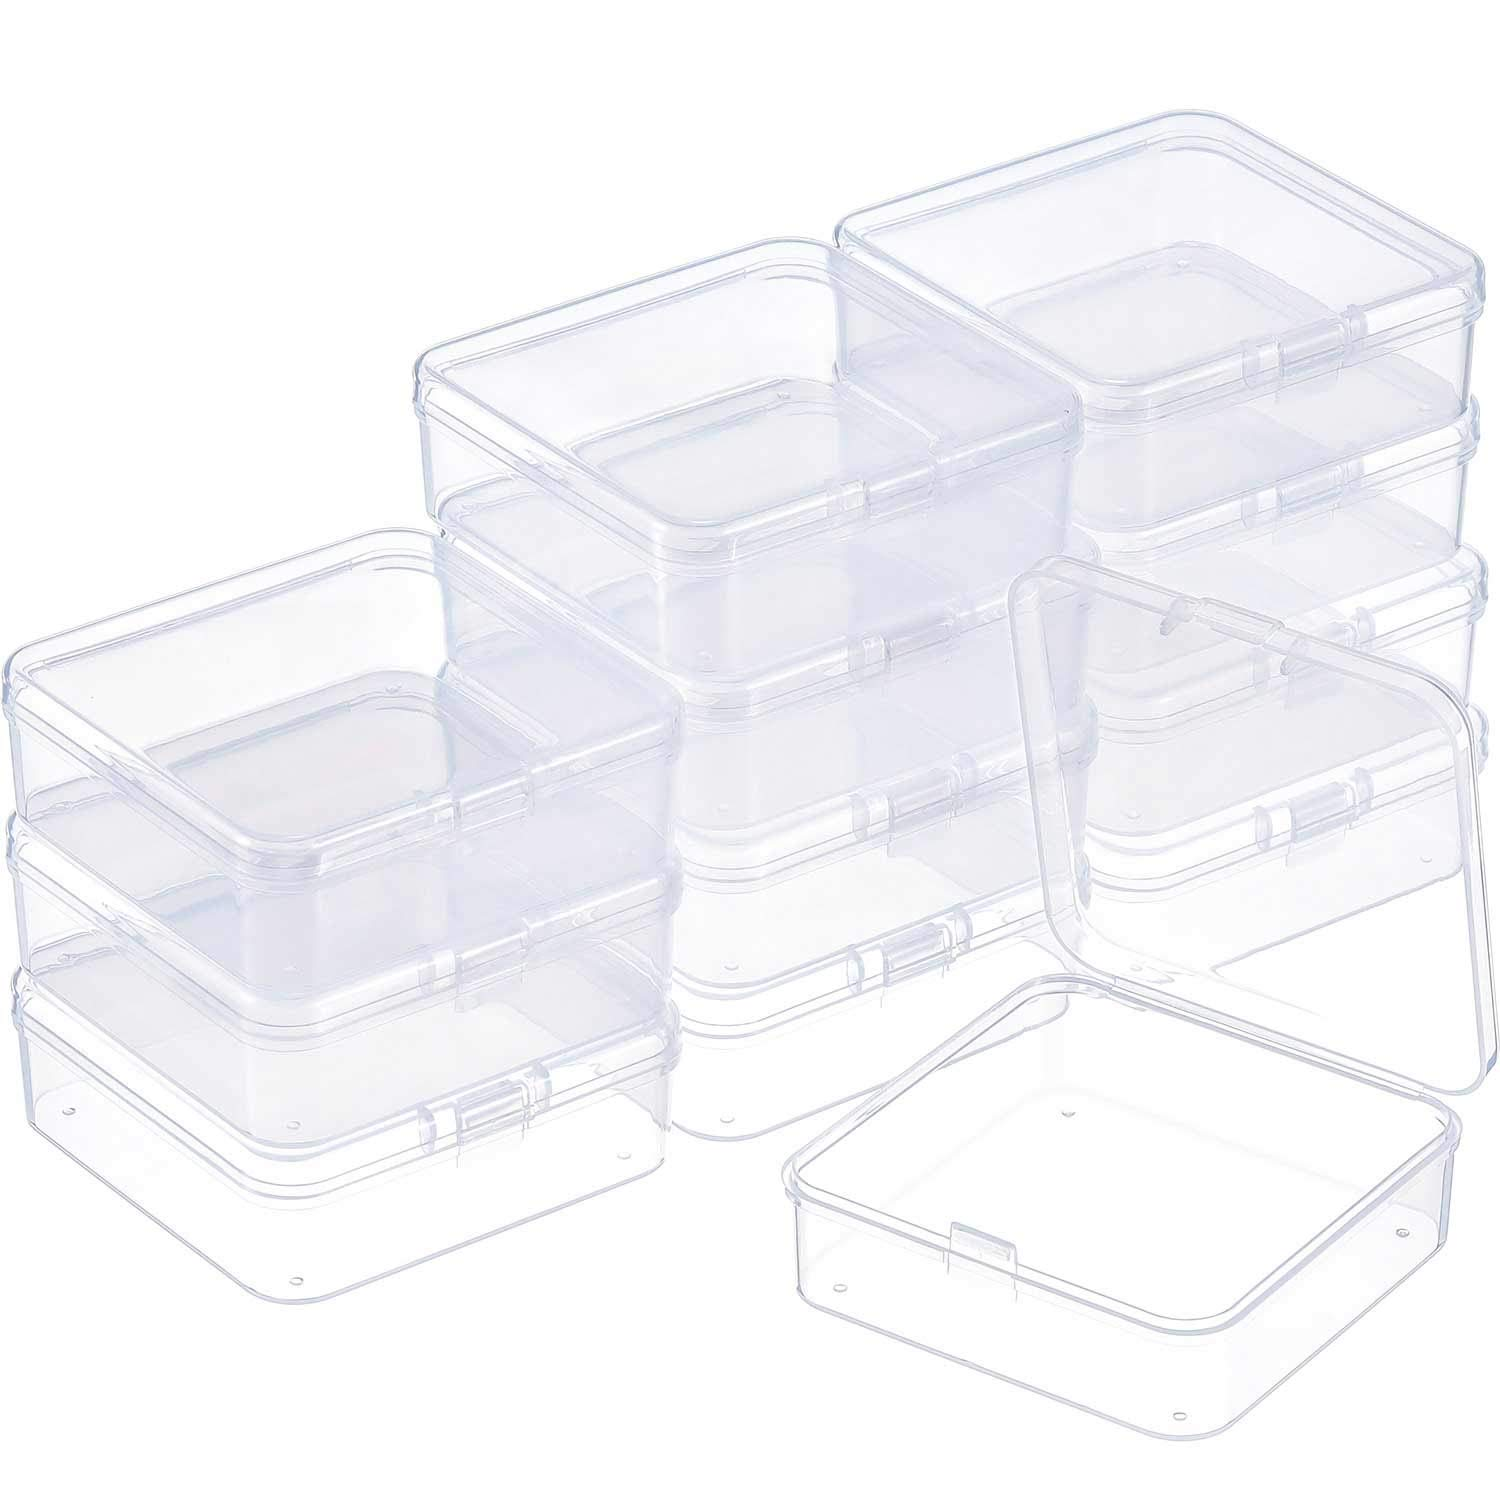 57ce51973dd8 SATINIOR 12 Pack Clear Plastic Beads Storage Containers Box with Hinged Lid  for Beads and More (2.9 x 2.9 x 1 Inch)